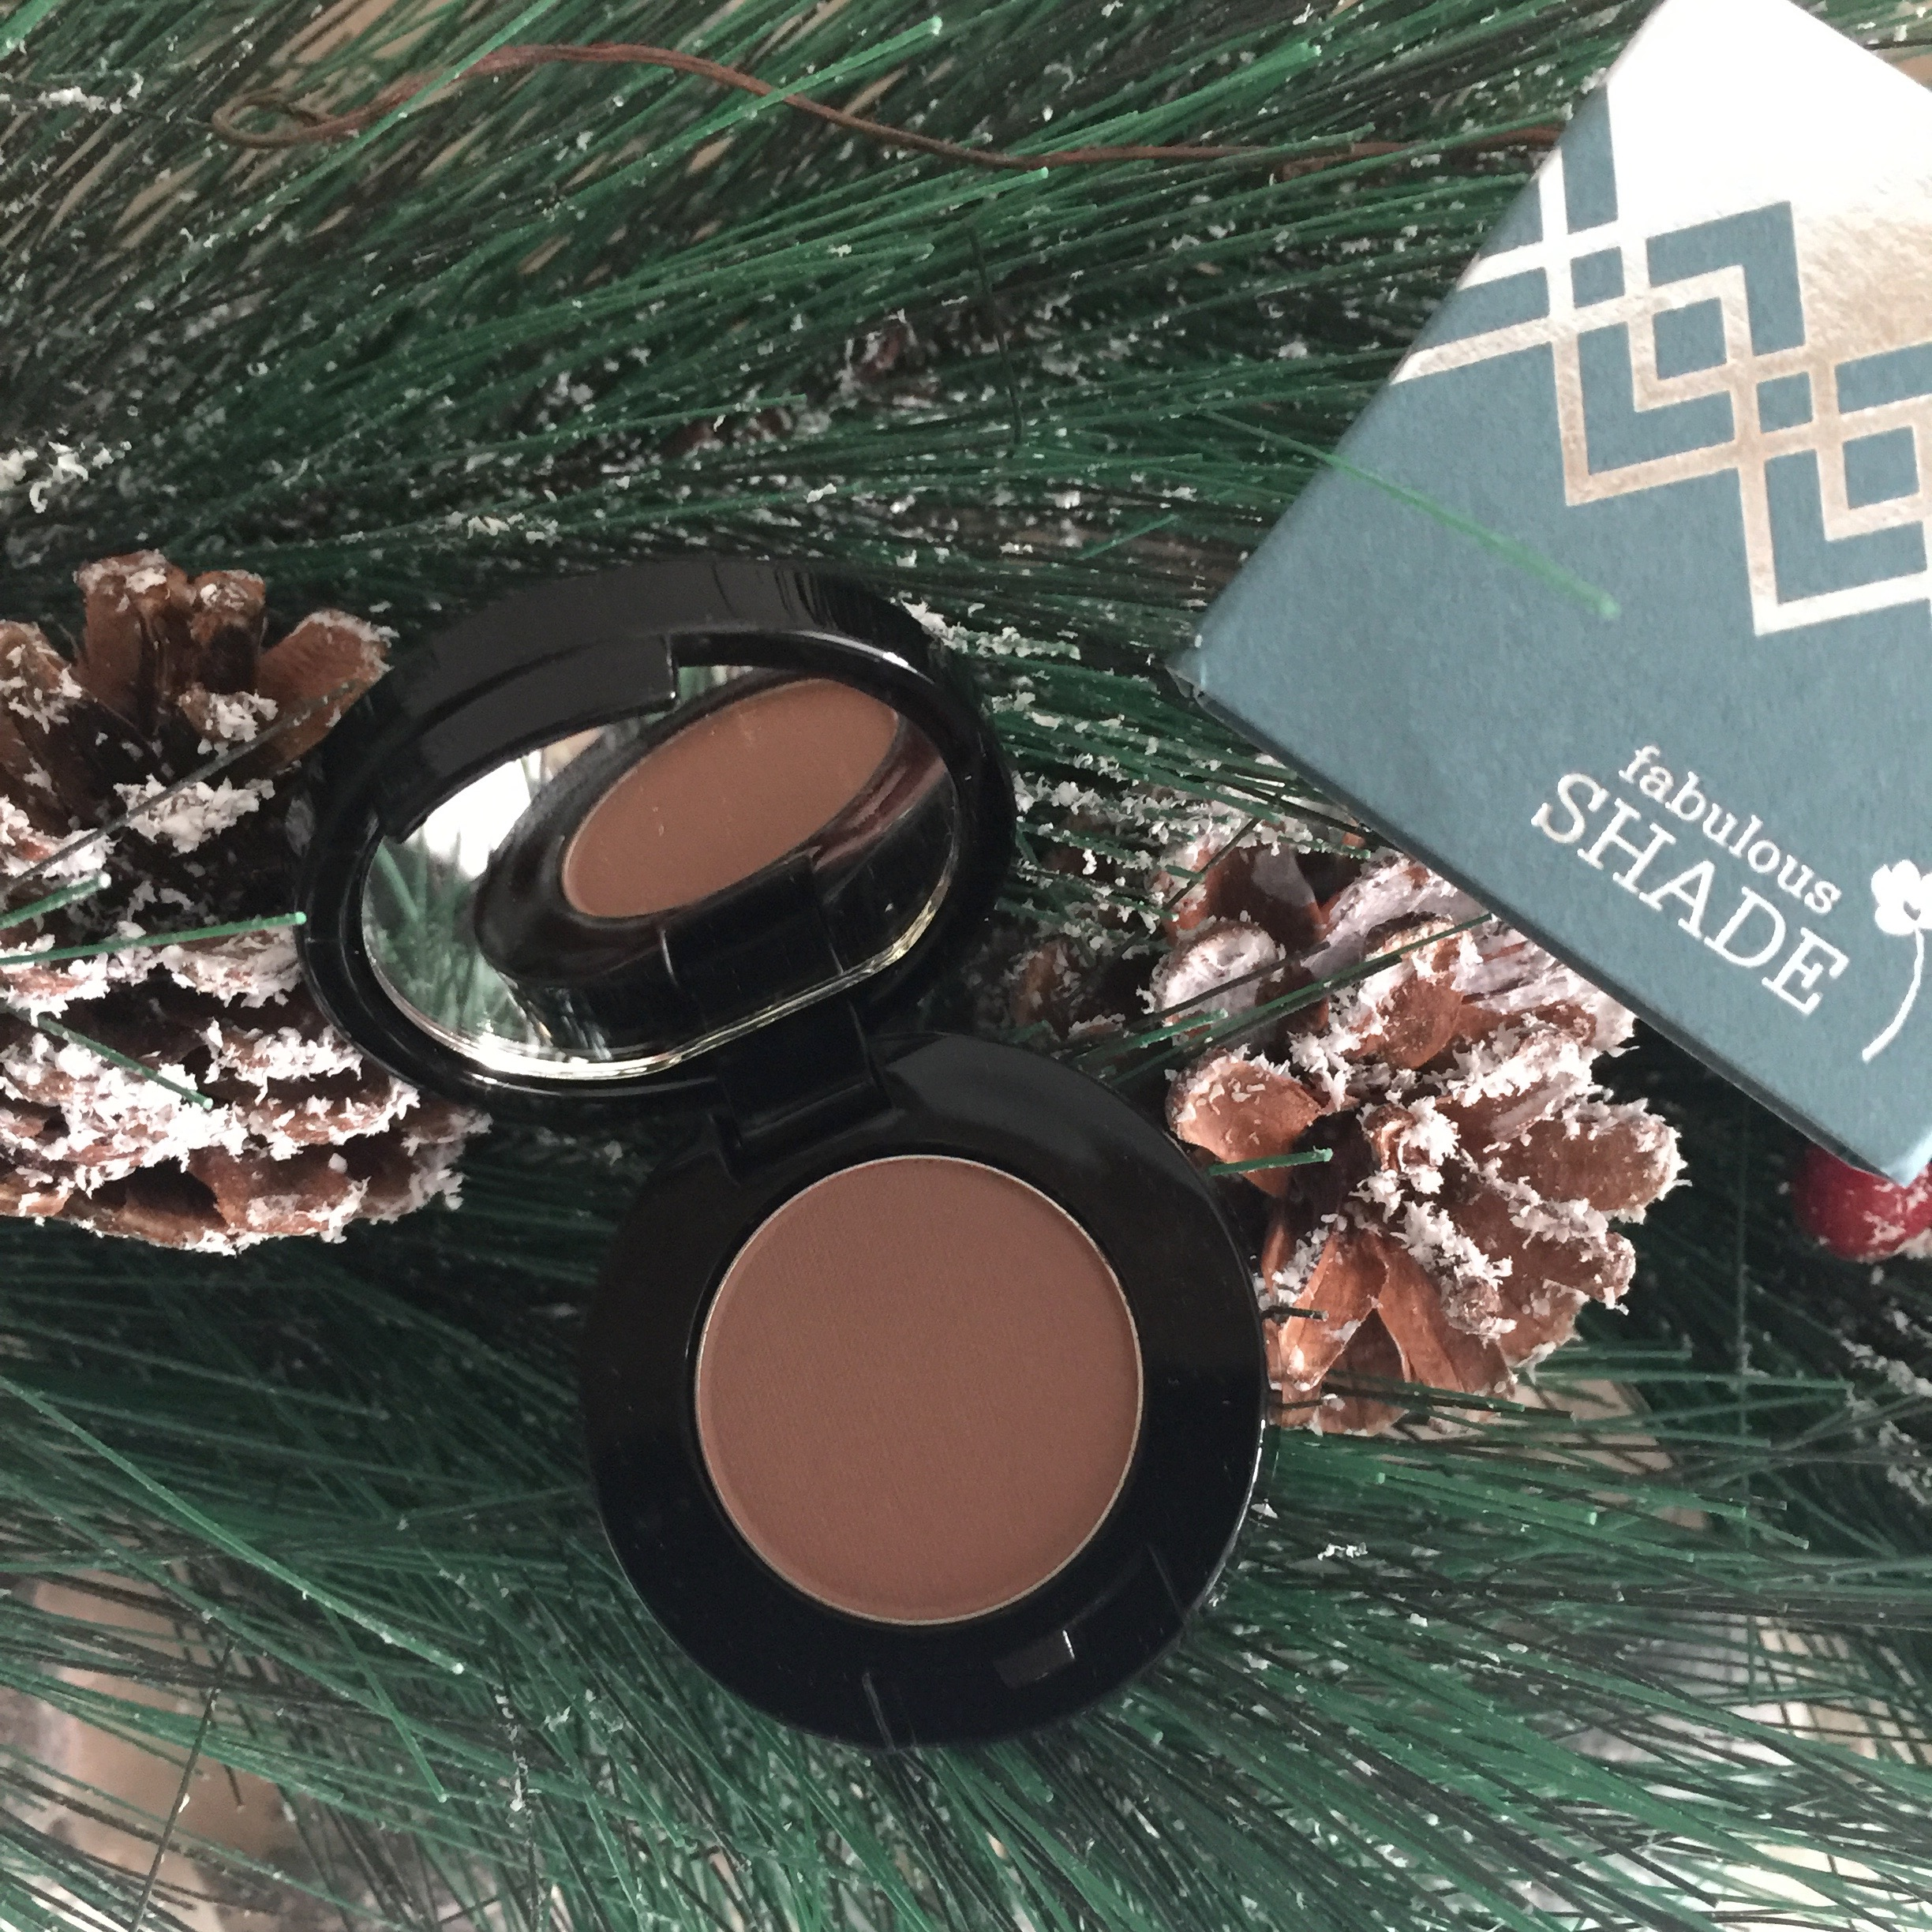 LOOK FABULOUS FOREVER, COCOA EYE SHADOW.